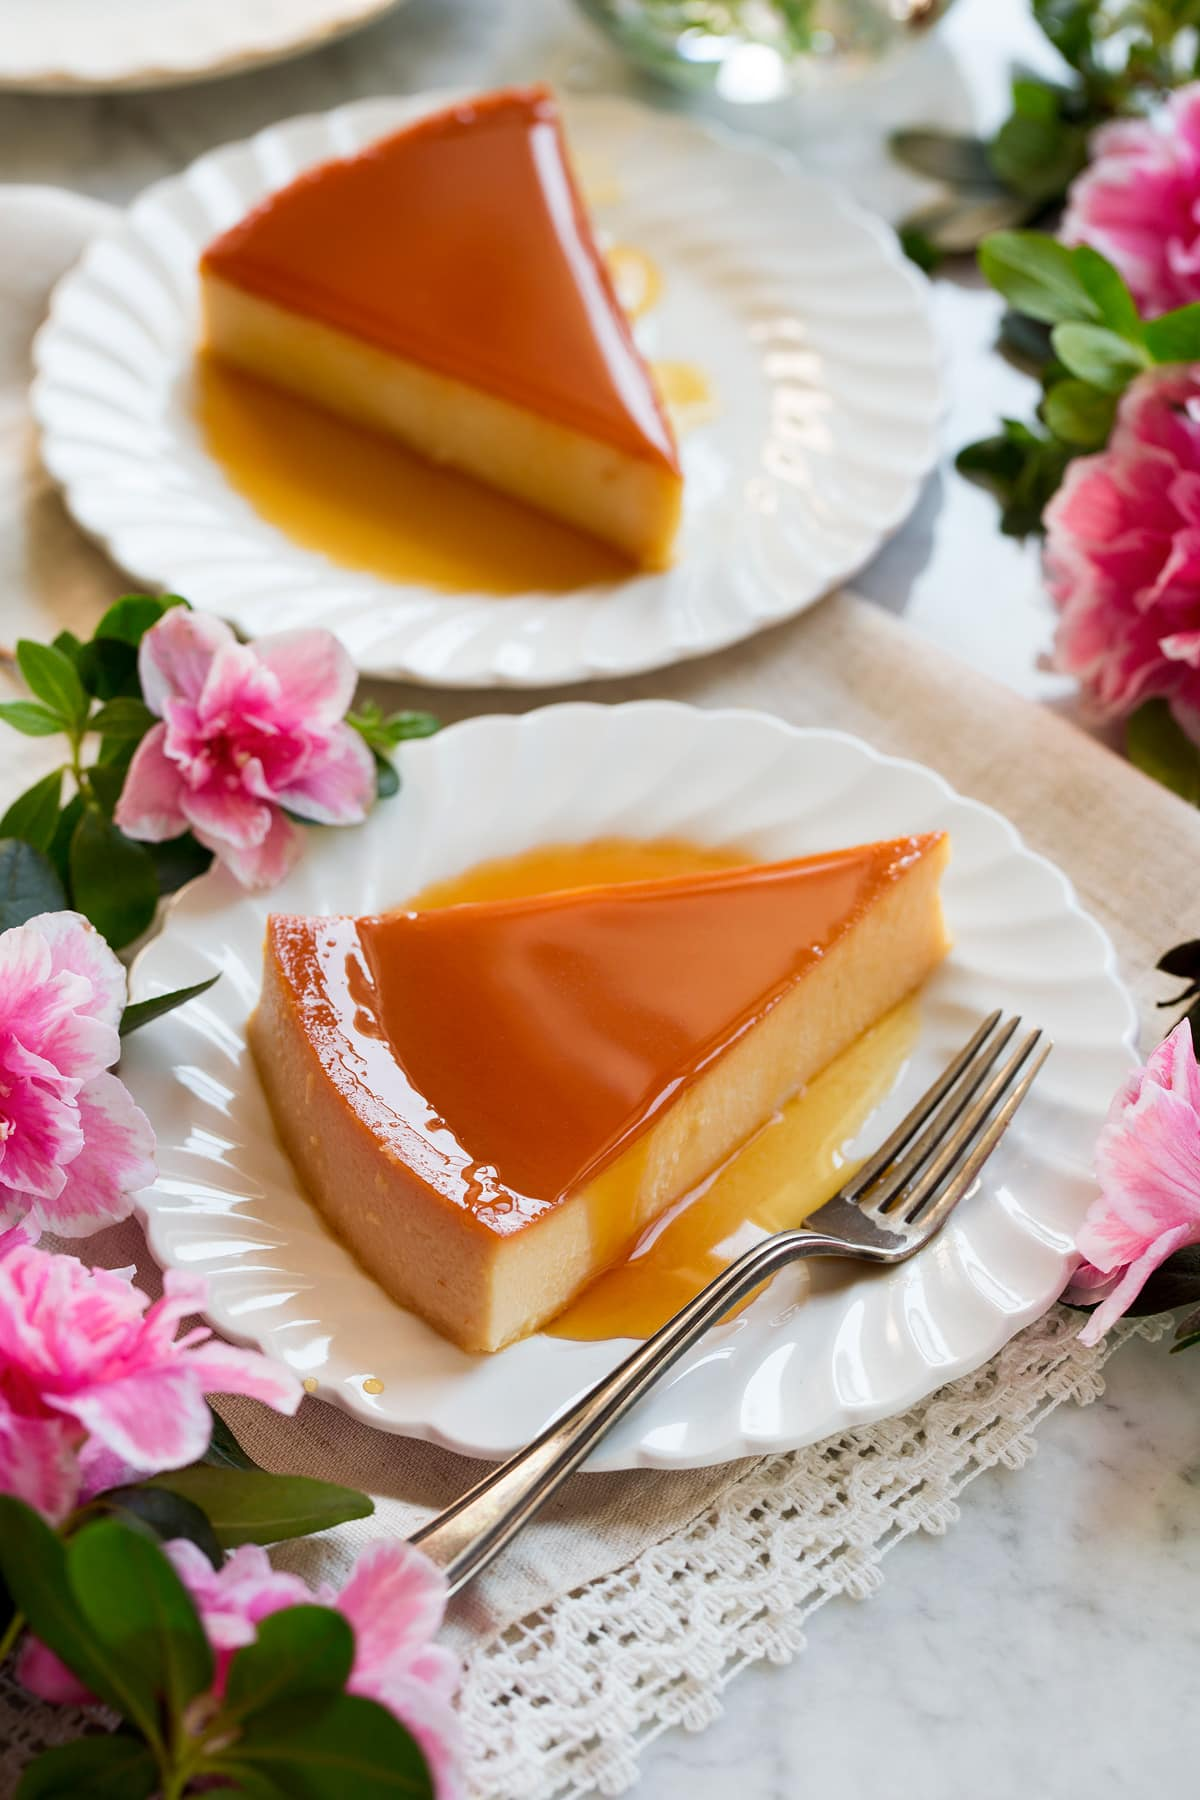 Image of two slices of flan on white scalloped plates with flowers around the sides.